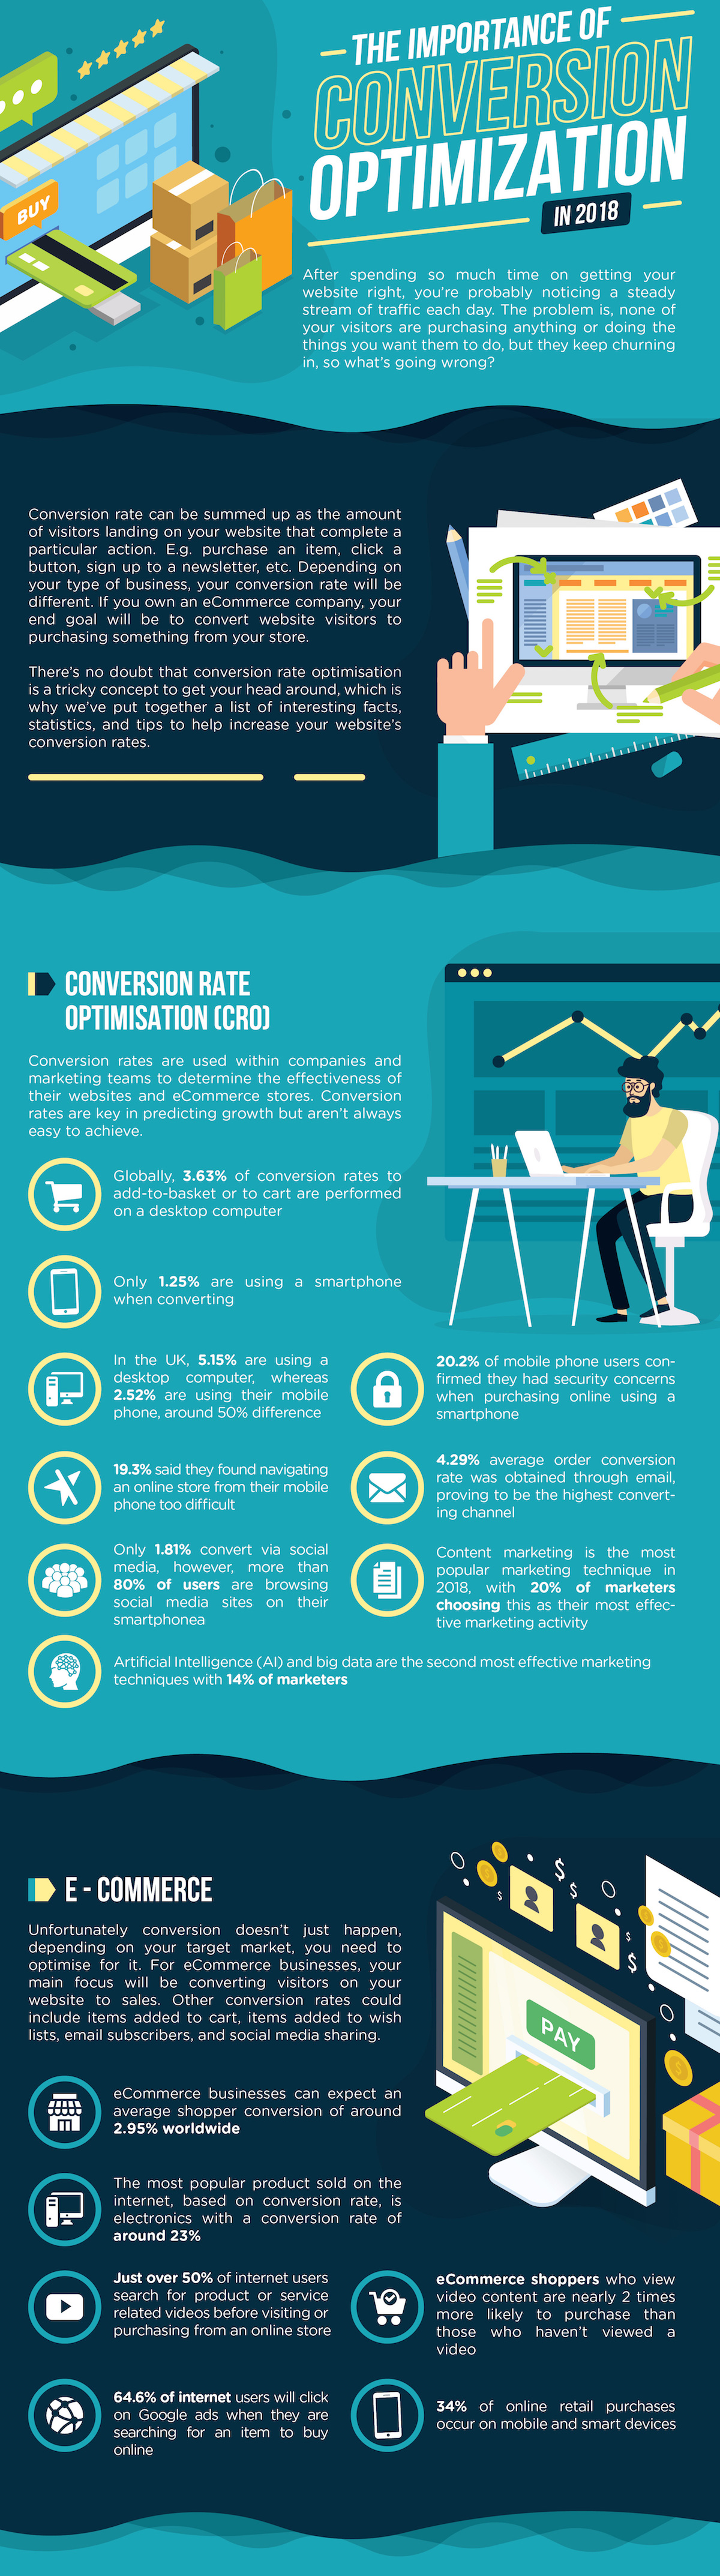 On this infographic by Top 10 Website Hosting, you'll find tips and tricks on how you can optimize your eCommerce conversions.